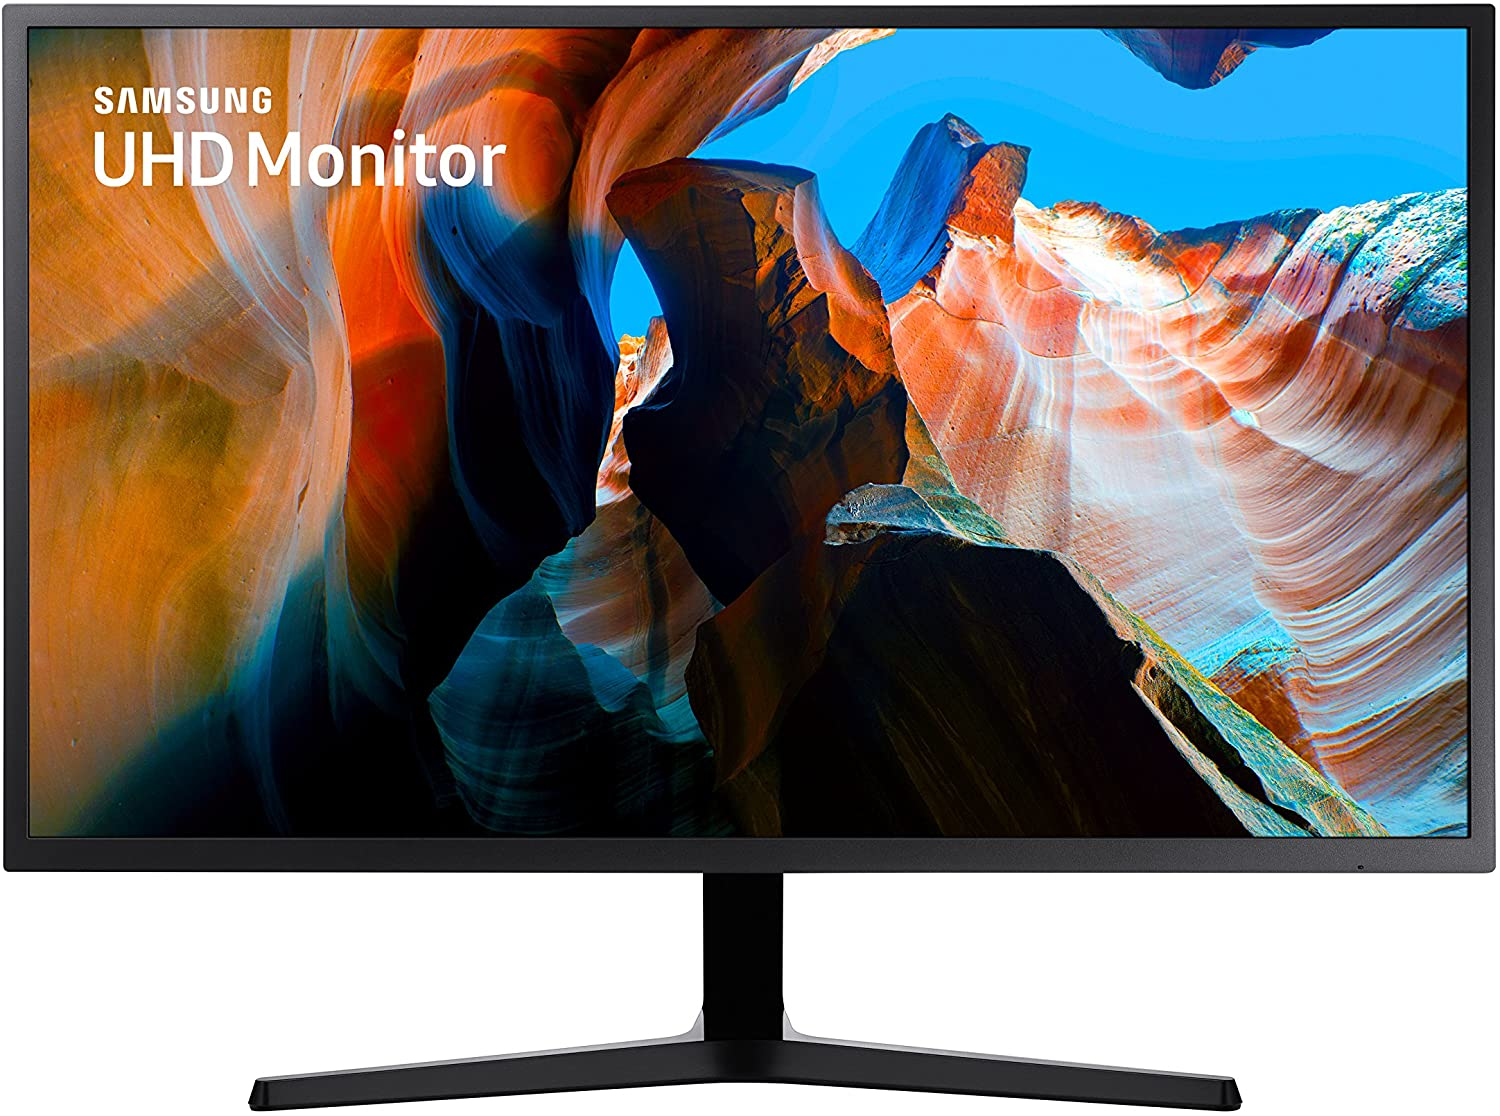 Save $30 on the 32-inch Samsung UJ59 4K UltraHD Monitor, It Comes with AMD FreeSync 4ms Response Time and 60Hz Refresh Rate